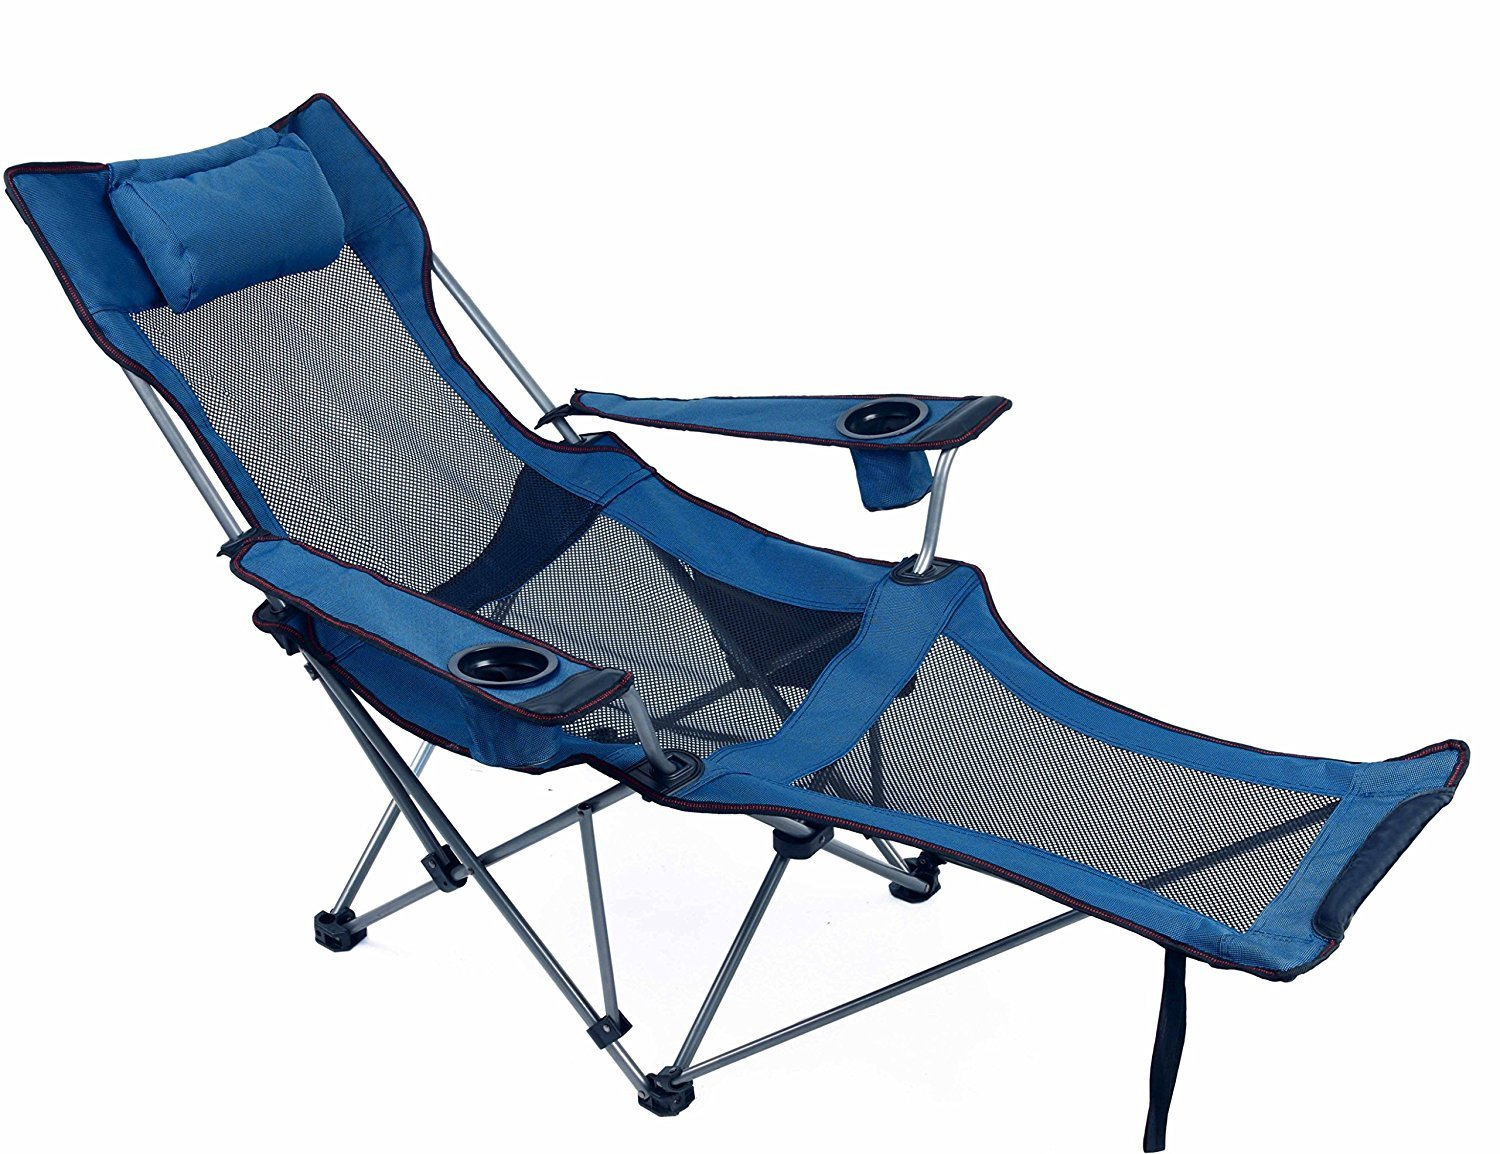 RORAIMA Light Weight Backpacking Reclining/Lounging Camping Folding Chair with Headrest and Footrest for Outdoor Camping RV BBQ Football Games [並行輸入品] B074DFZJ2M